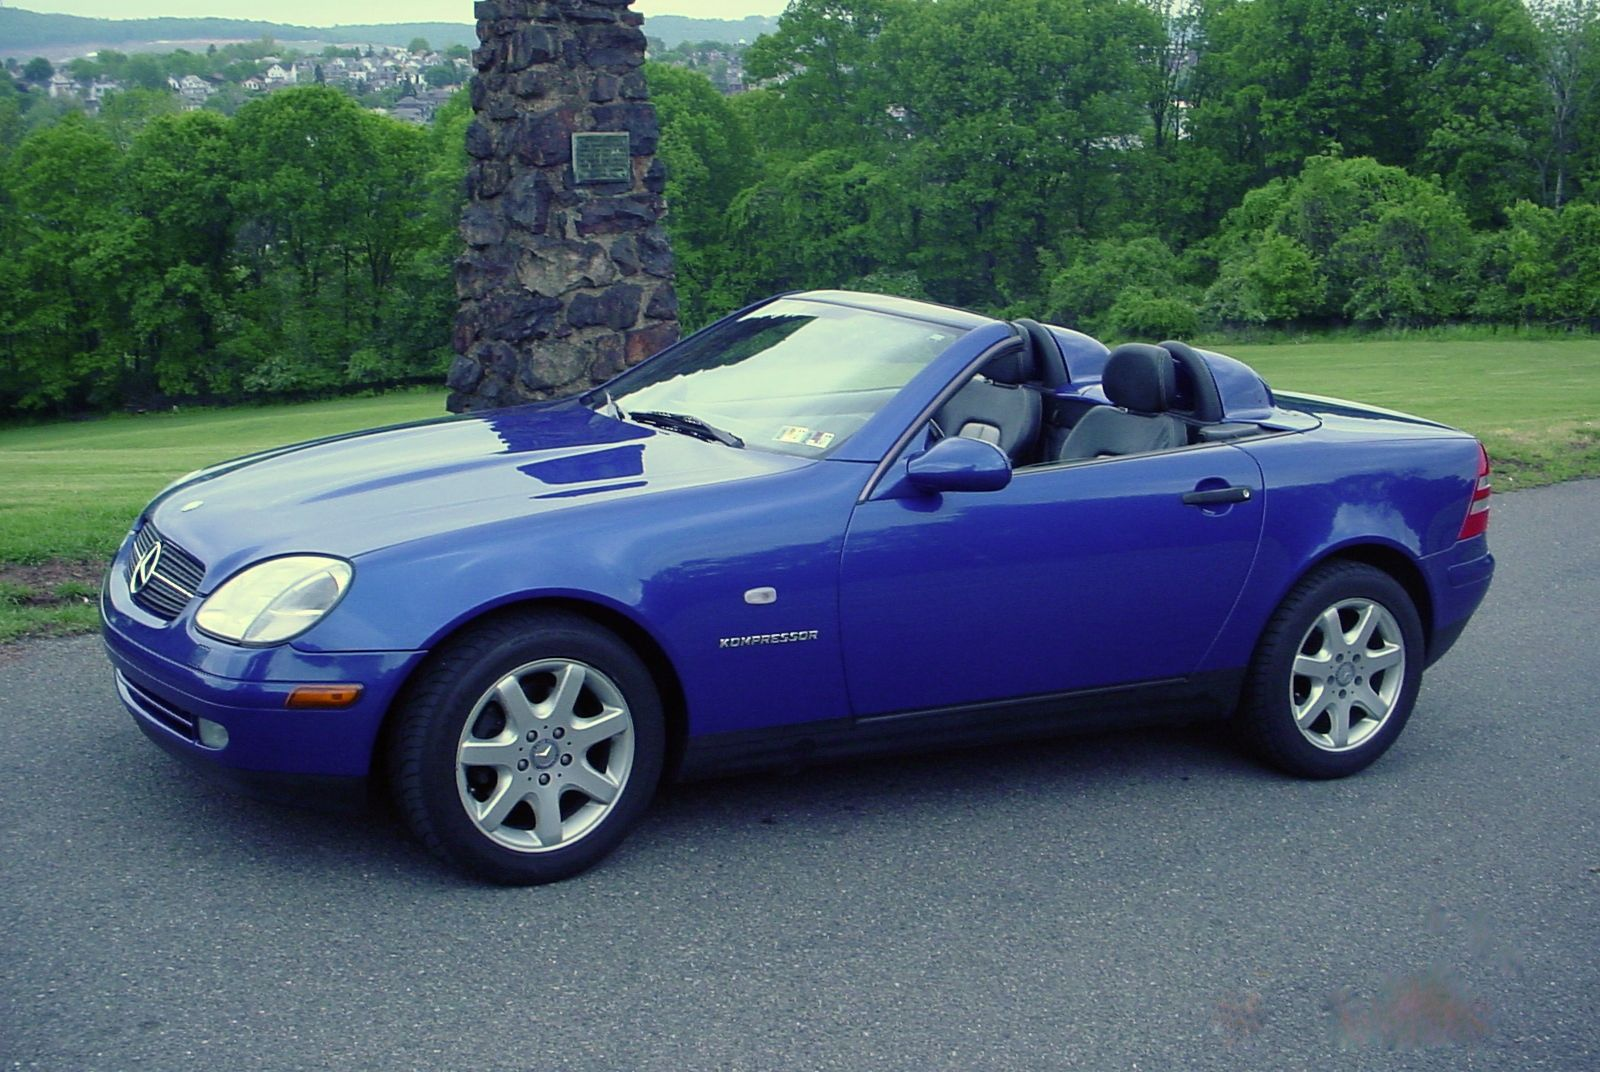 Mercedes Slk 230 With My Double Bubble Roll Bar Option Only One I Ve Seen Ever Mercedes Slk Mercedes Slk 230 Mercedes